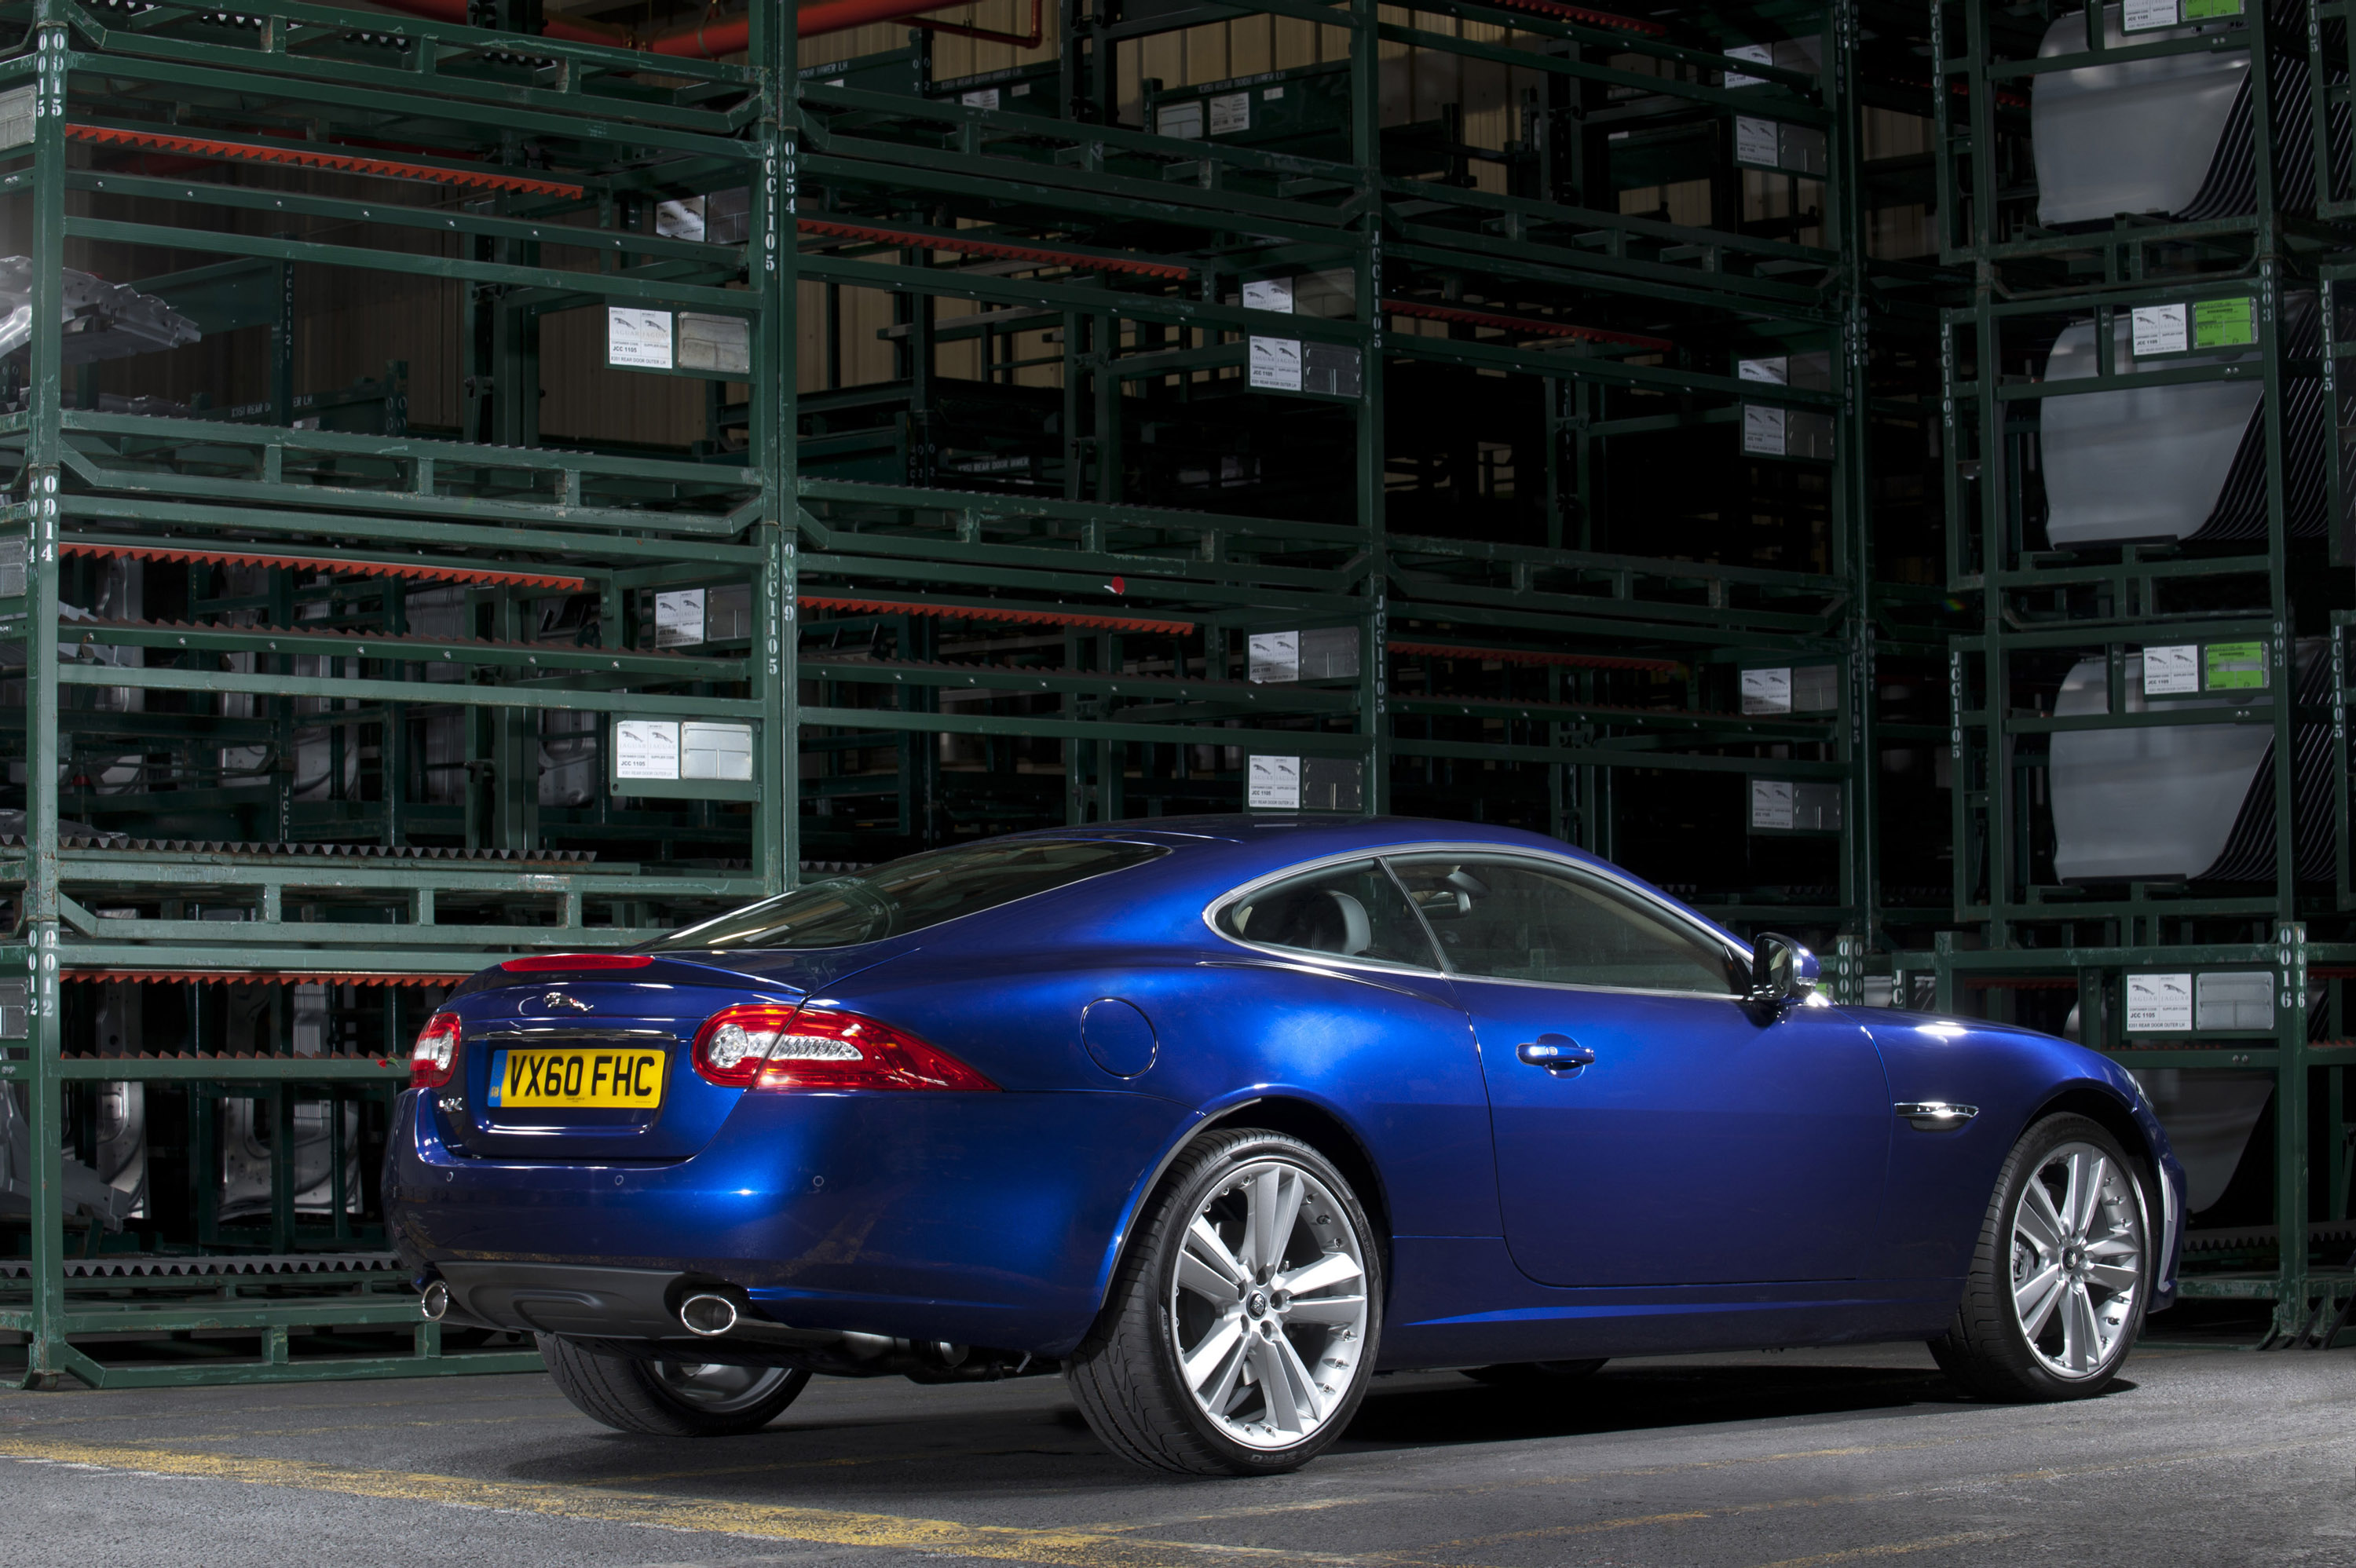 absolutely gc cars fhc cinderellas xk longer of great jaguar touring no range gallery the and